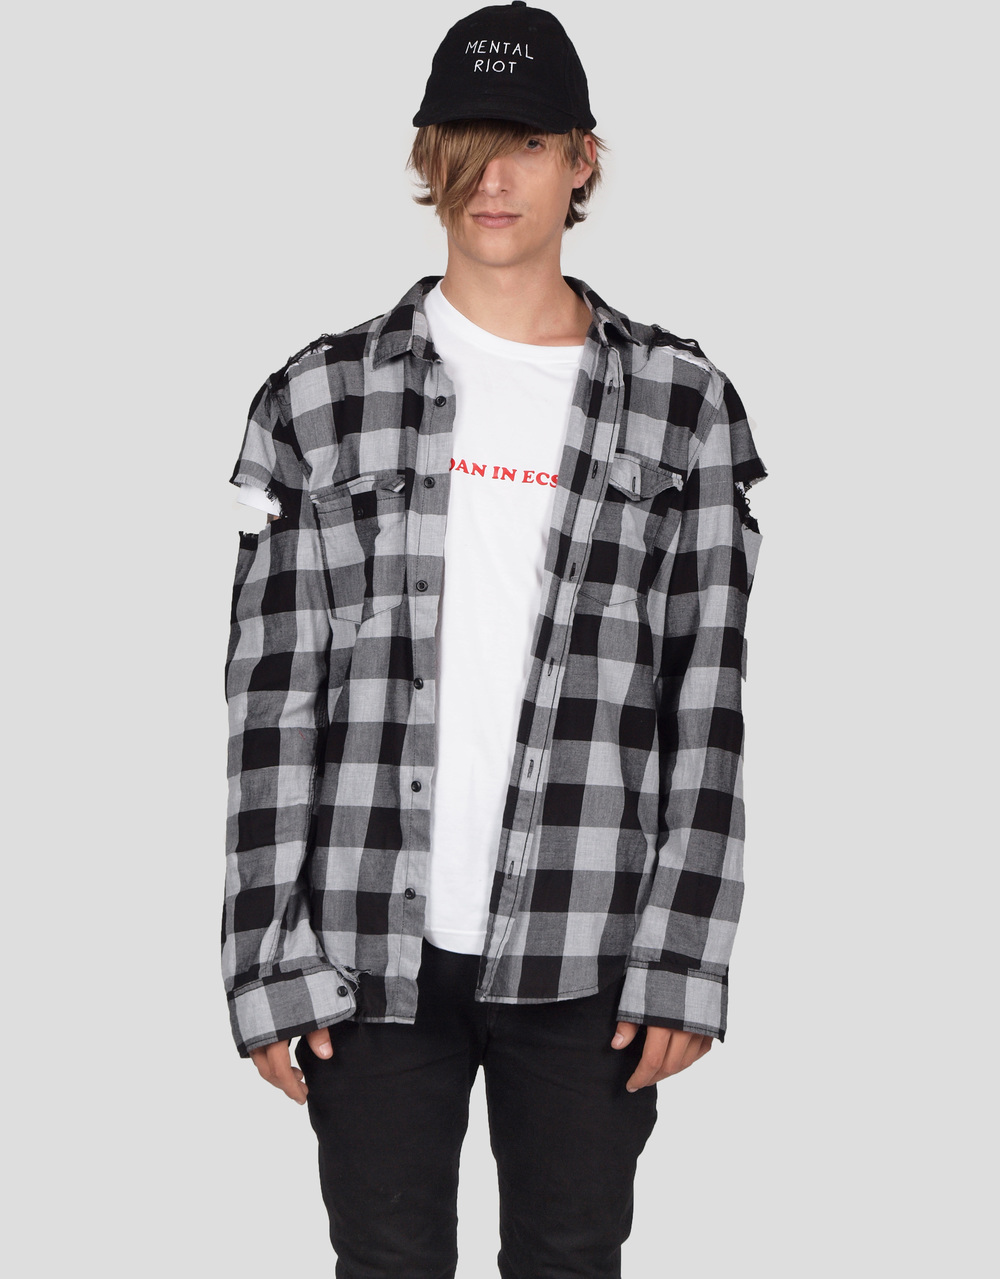 ERIS BLACK - GREY & BLACK DISTRESSED PLAID SHIRT